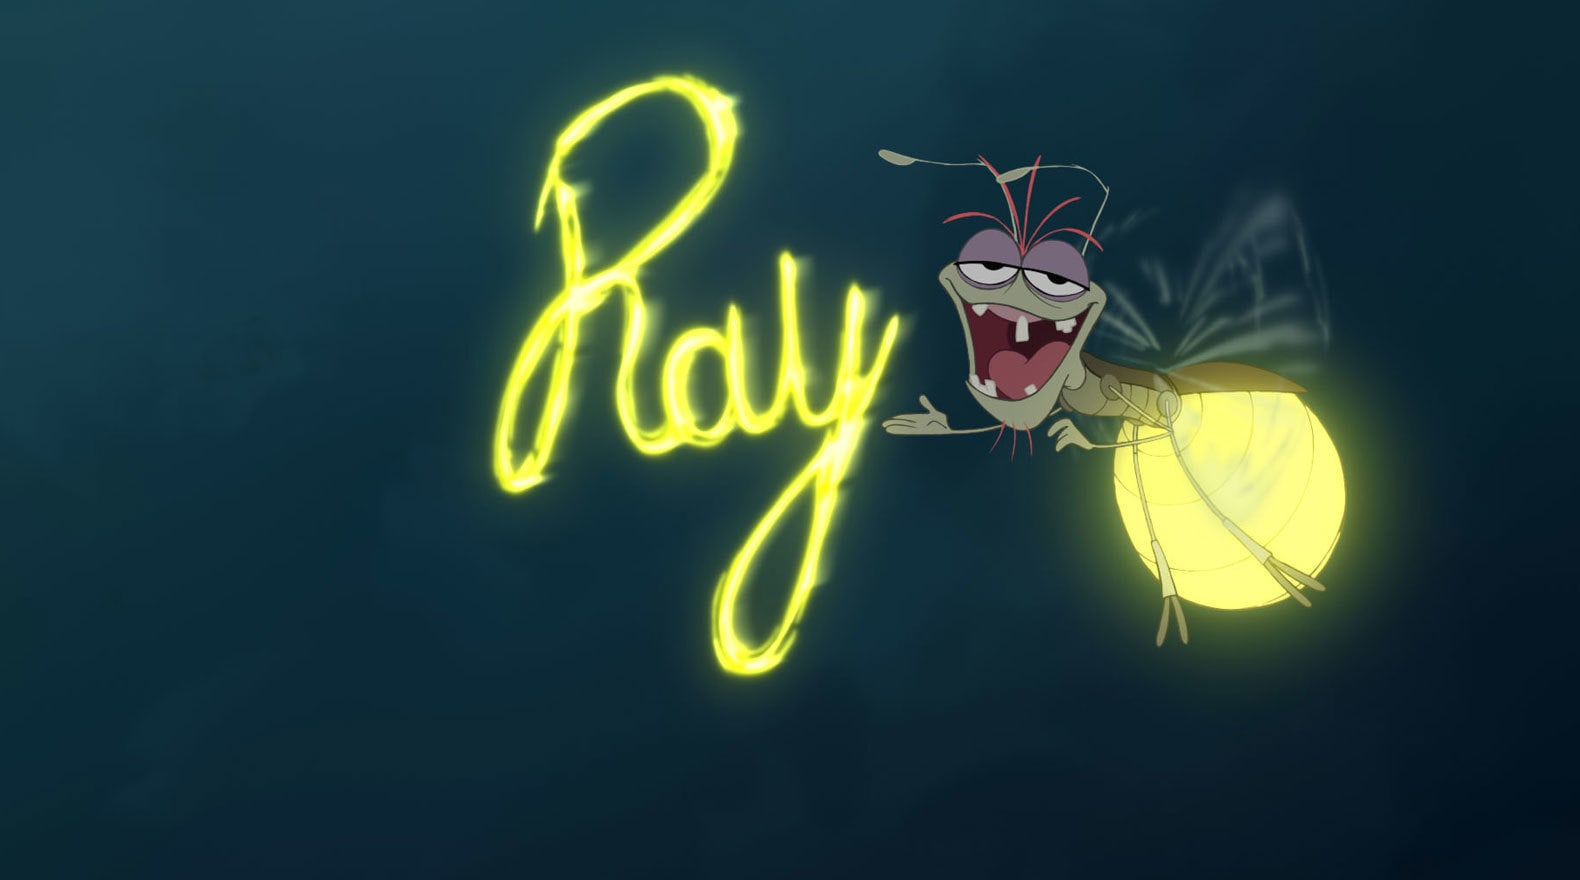 Ray a firefly voiced by Jim Cummings writes his name in lights